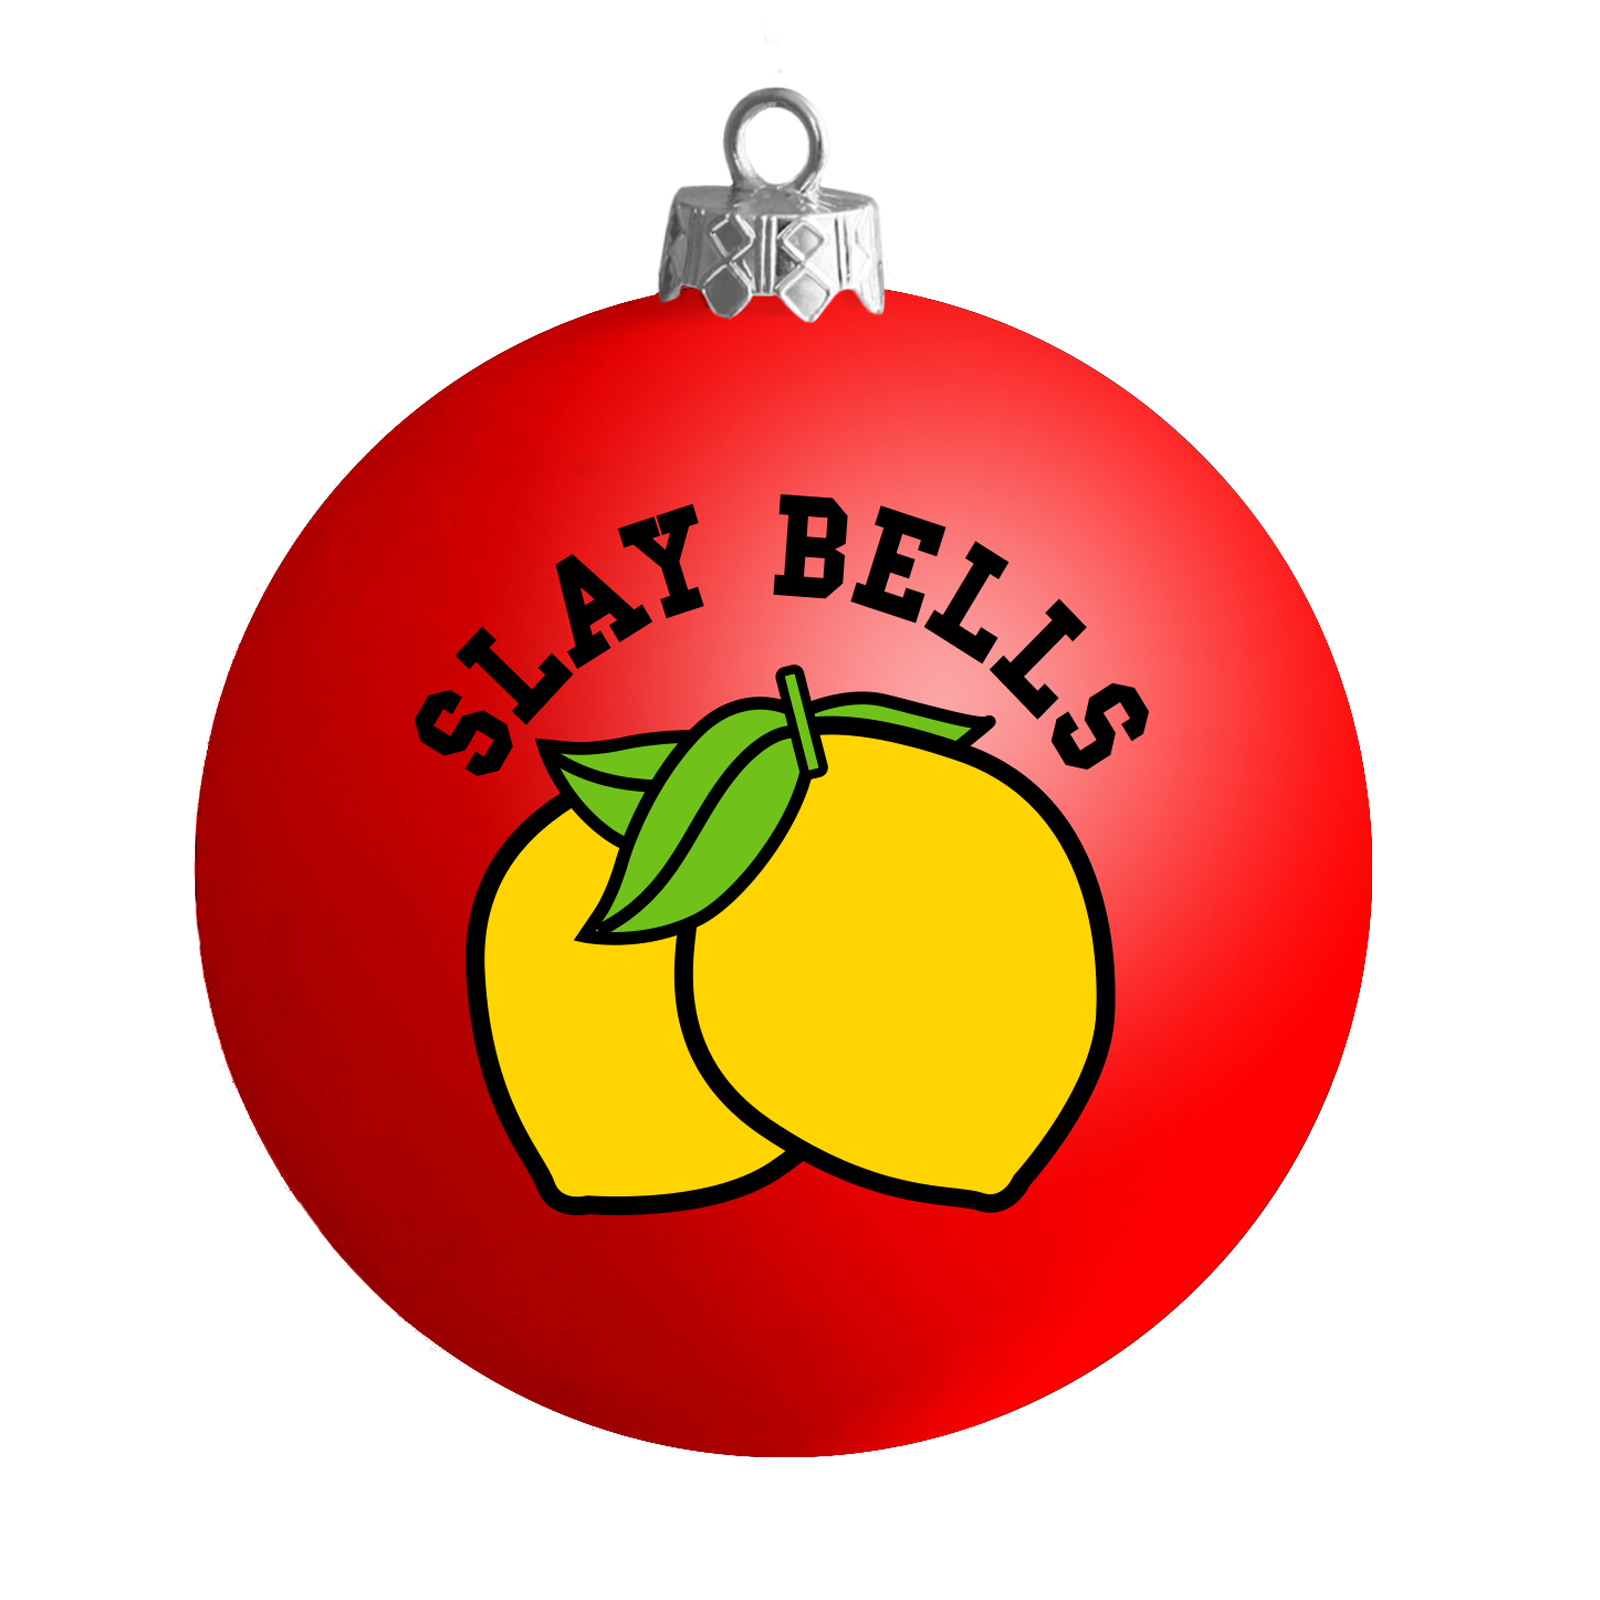 Ornament_Slaybells_Red_Ball.png